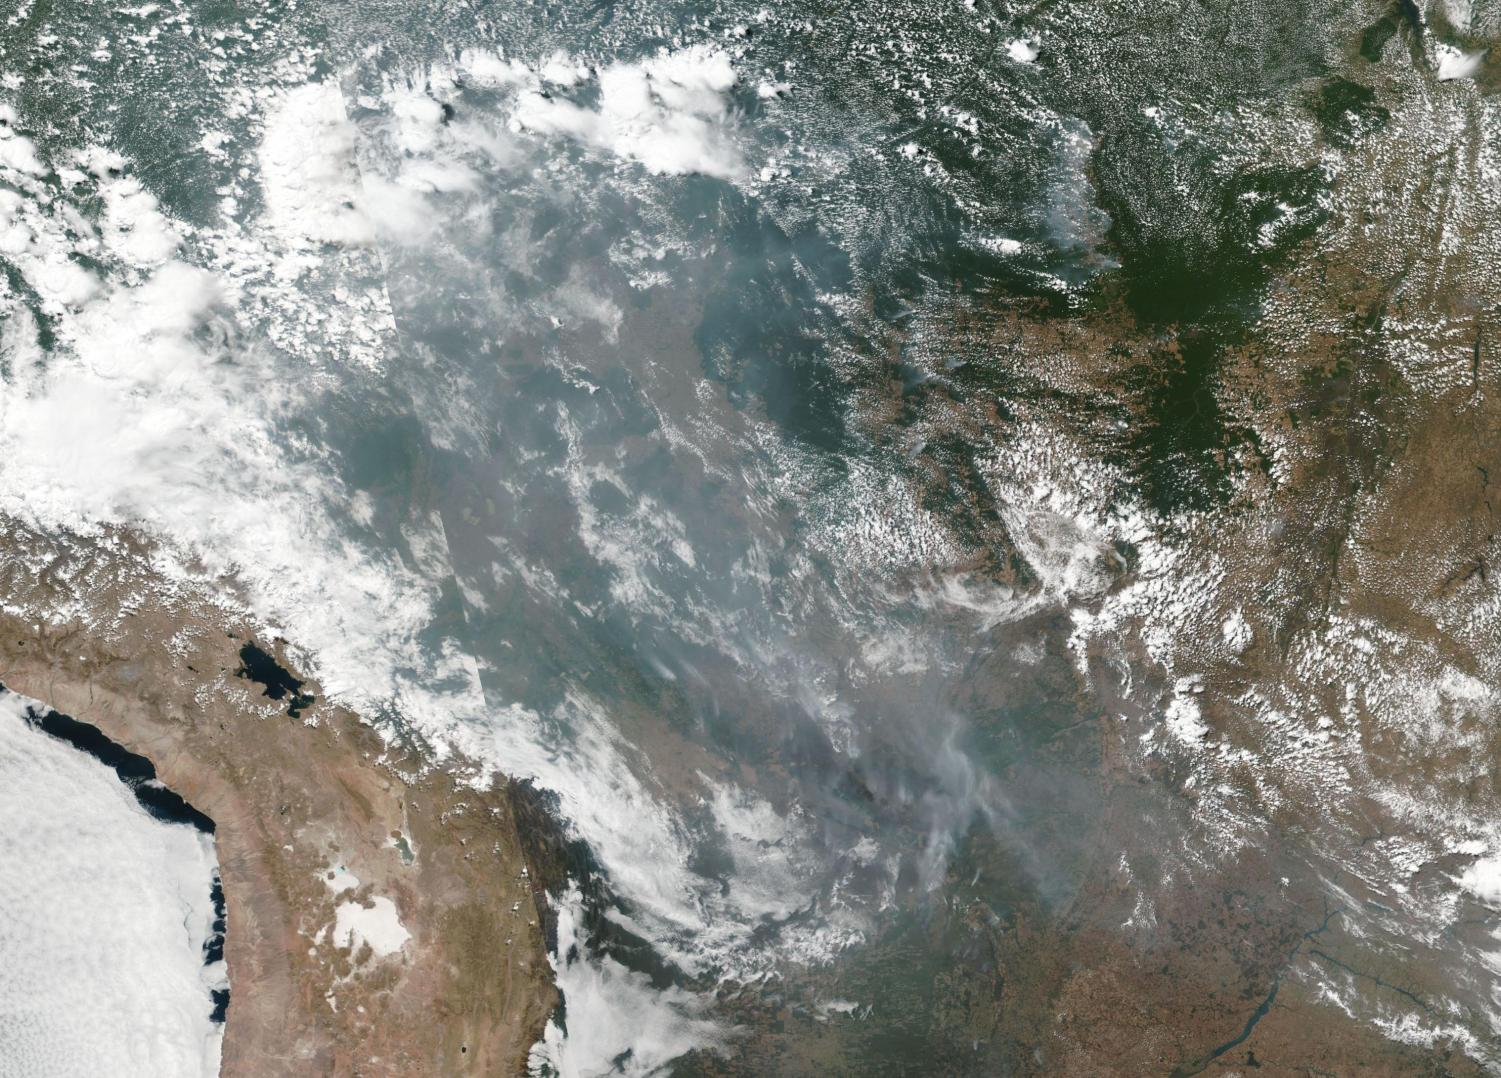 From Wikimedia commons, the smoke from wildfires burning in the Amazon basin on August 20, 2019, taken by the Suomi NPP using the VIIRS (Visible Infrared Imaging Radiometer Suite)